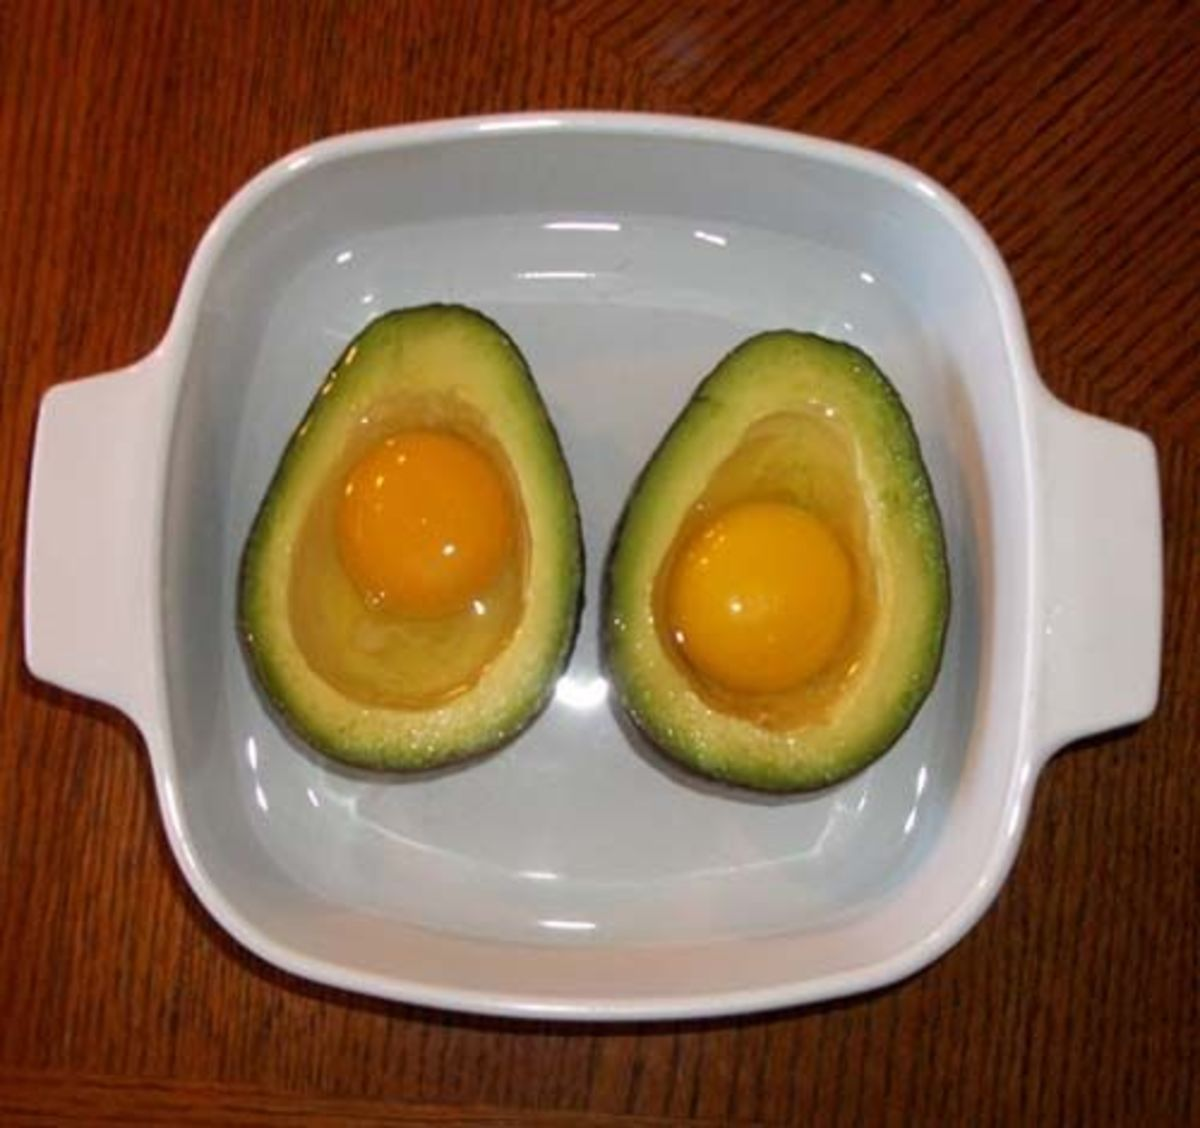 Pour eggs into avocado halves in water bath.